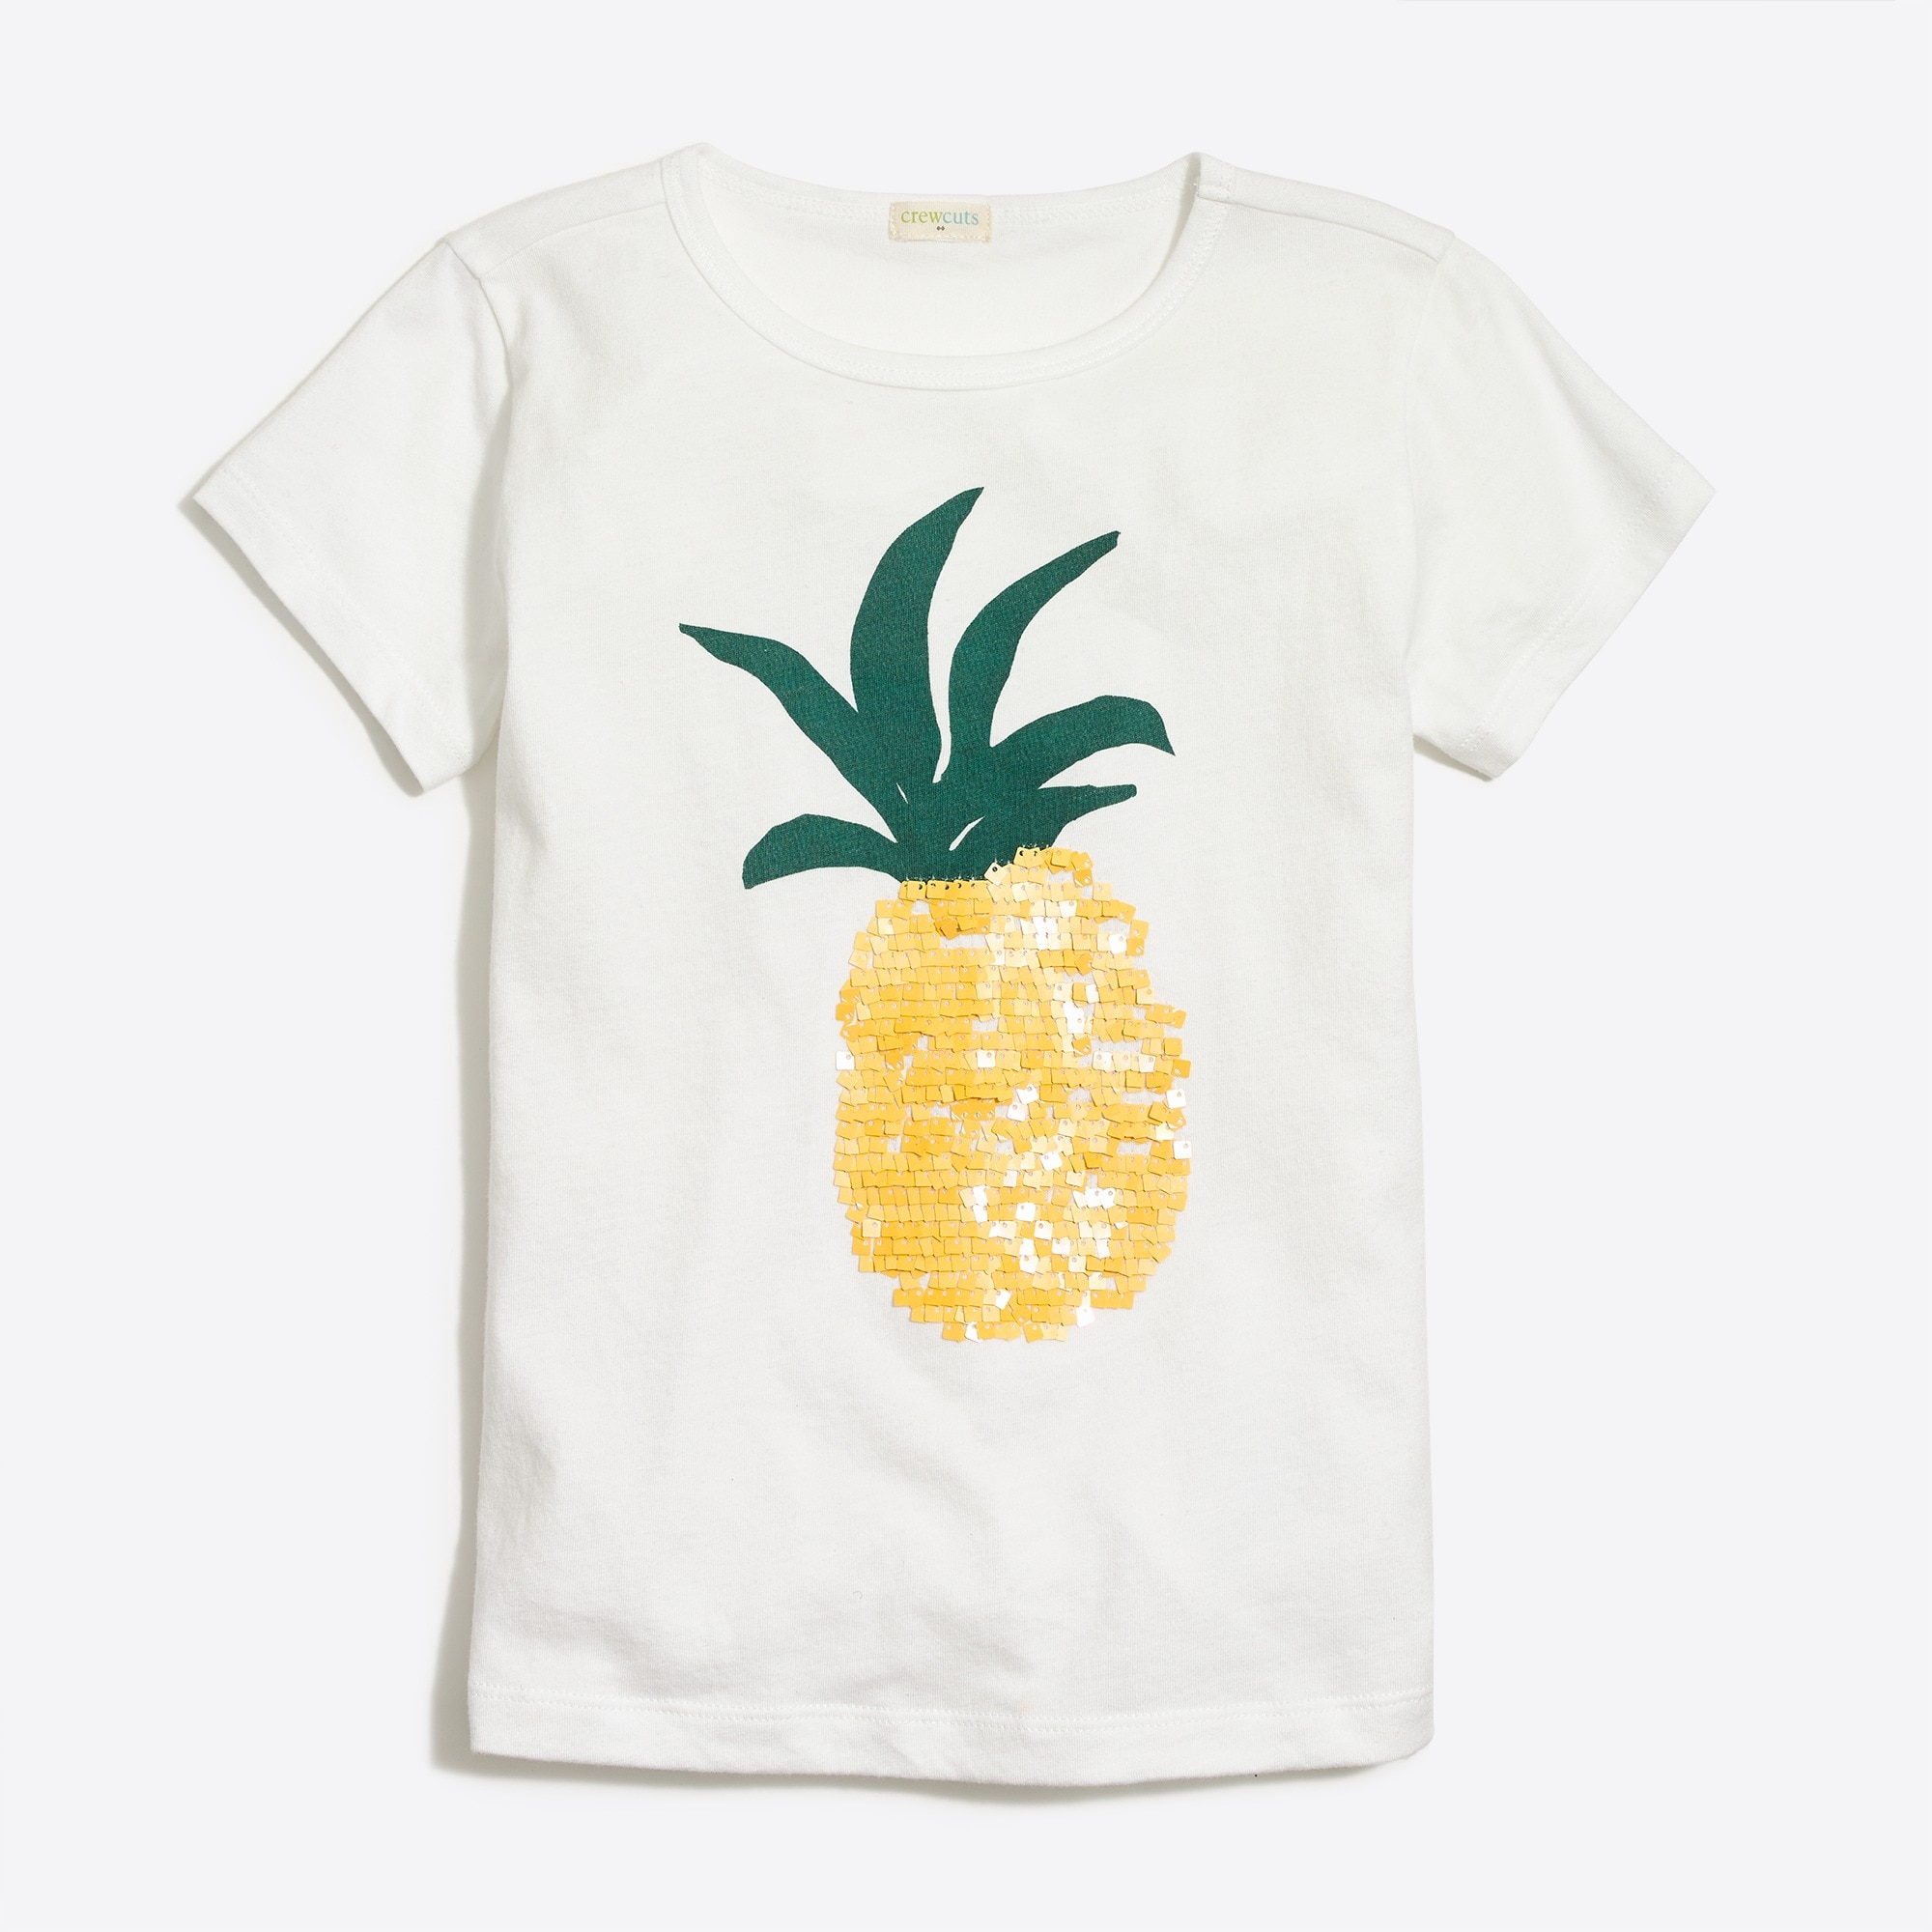 factory girls Girls' sequin pineapple graphic T-shirt